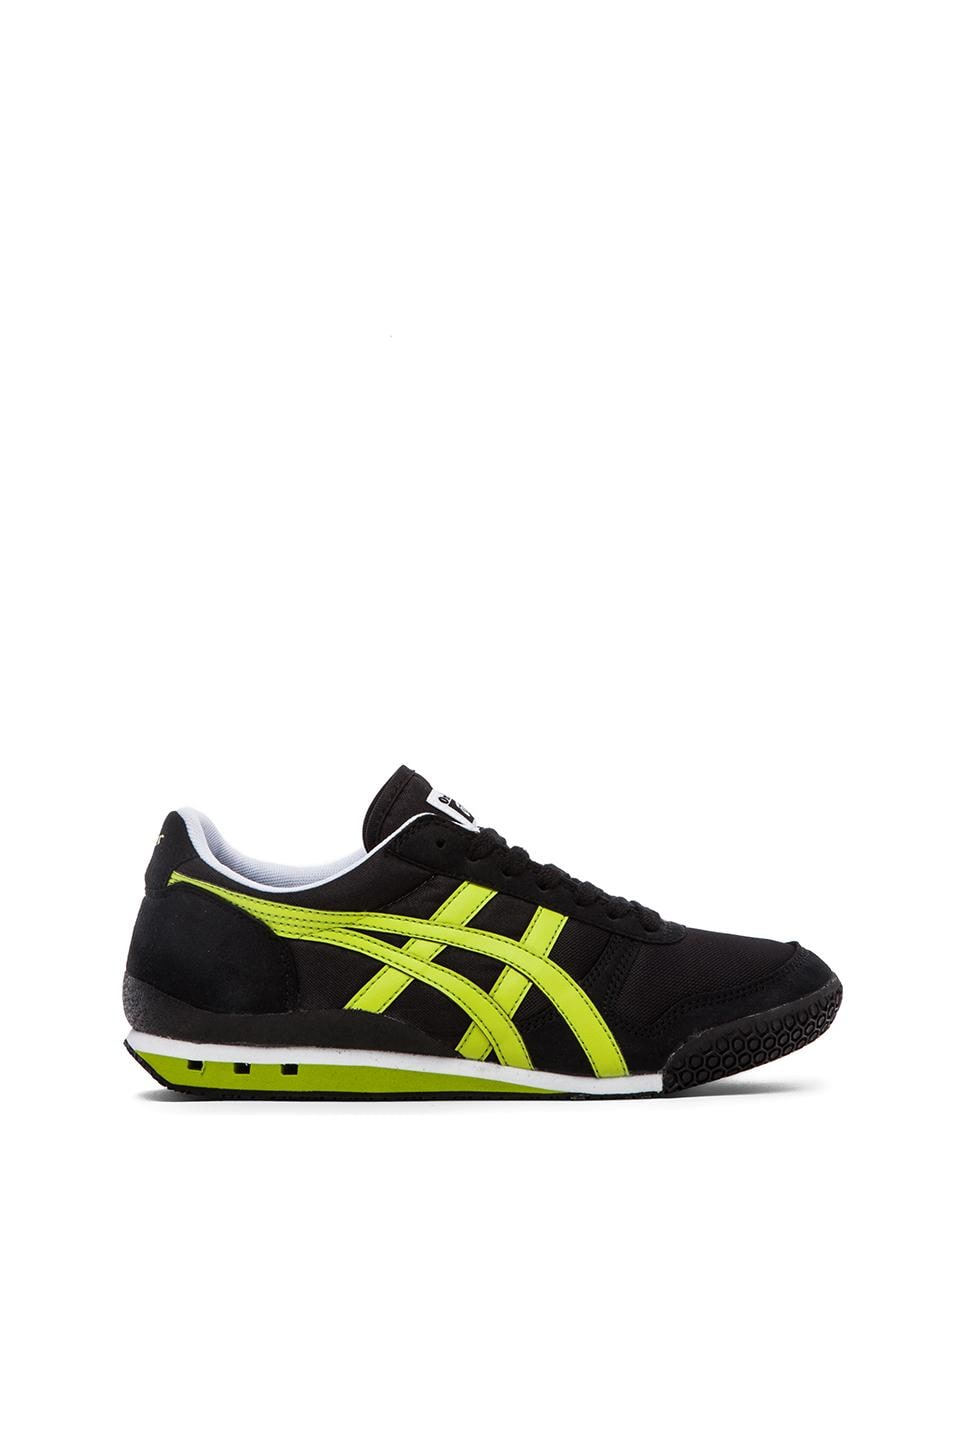 Onitsuka Tiger Ultimate 81 in Black & Lime